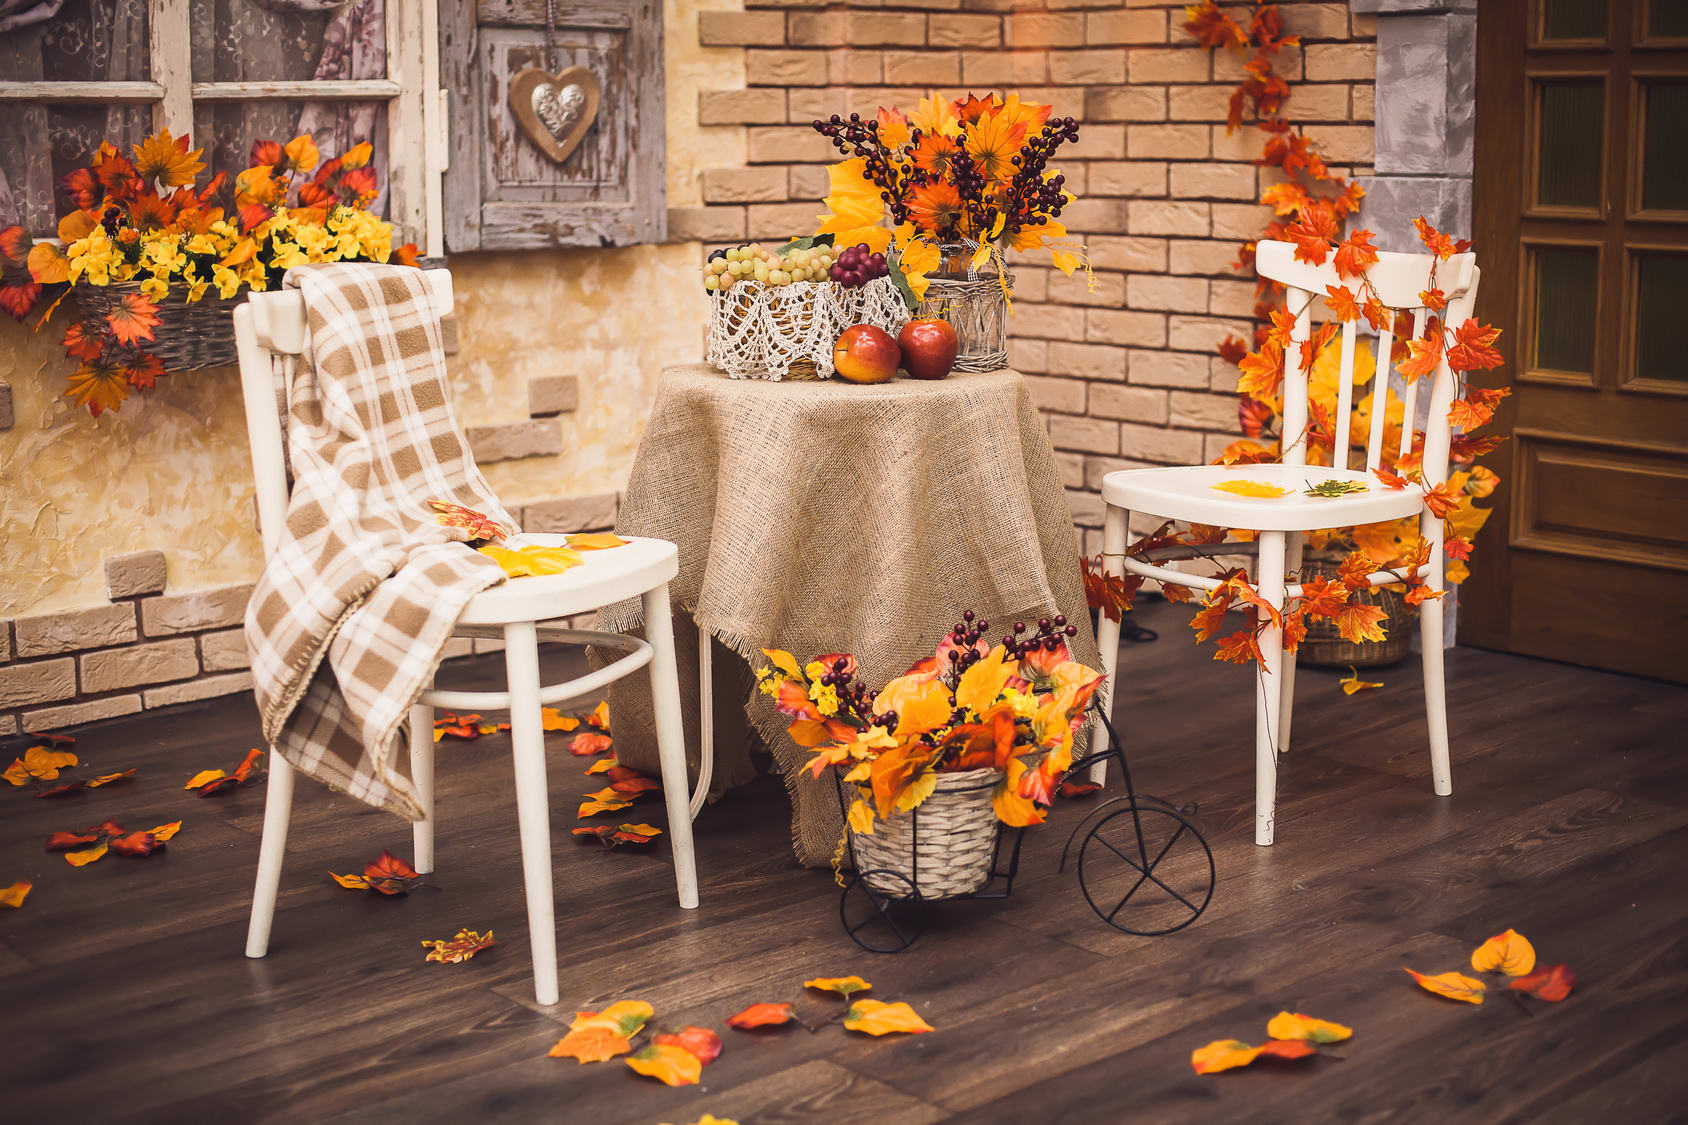 10 Amazingly Simple Fall Decorating Tips - Jake's Moving and Storage